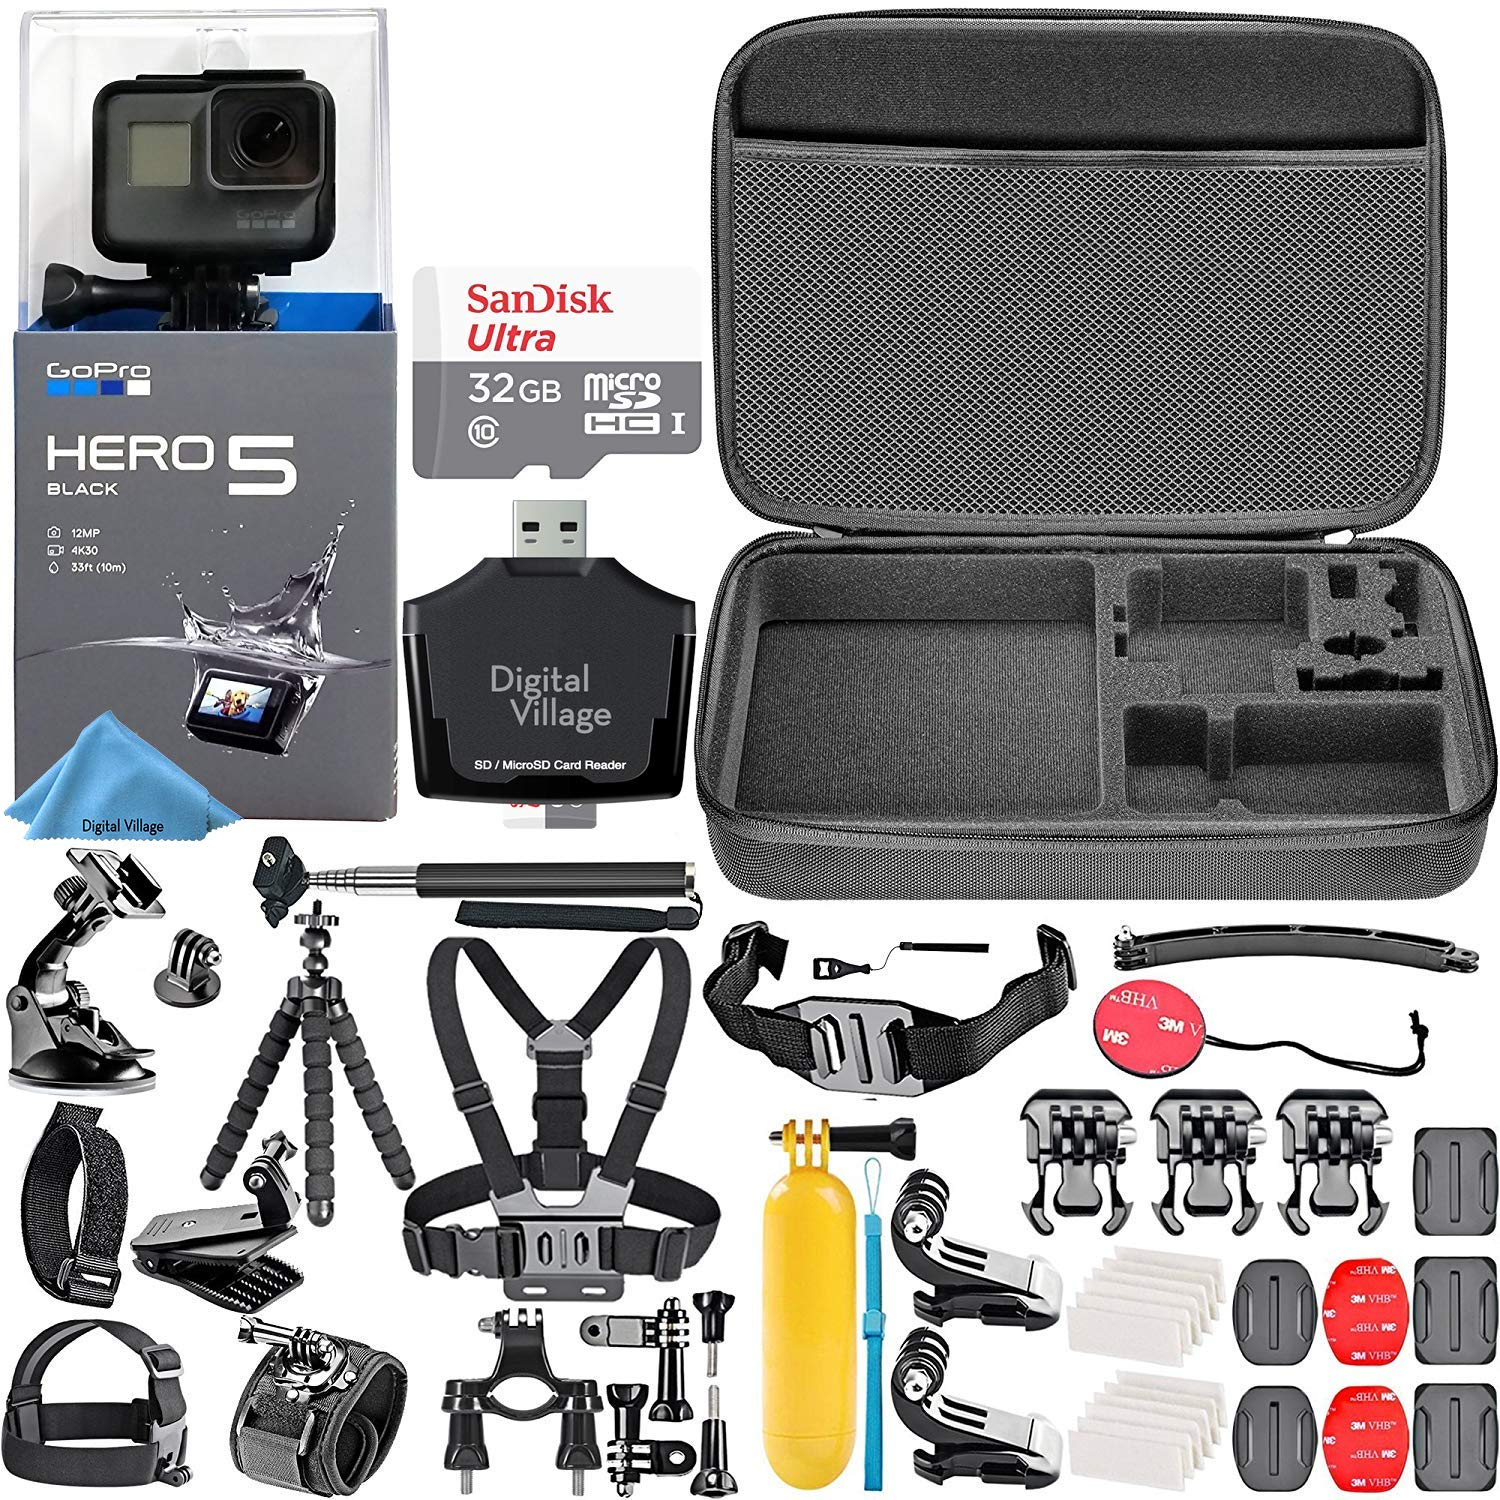 GoPro HERO5 Black + 32GB Memory Card + Hard Case + Card Reader + Chest Strap Mount + Head Strap Mount + Flexible Tripod + Extendable Monopod + Floating Handle + Hero 5 Best Value Bundle by Digital Village